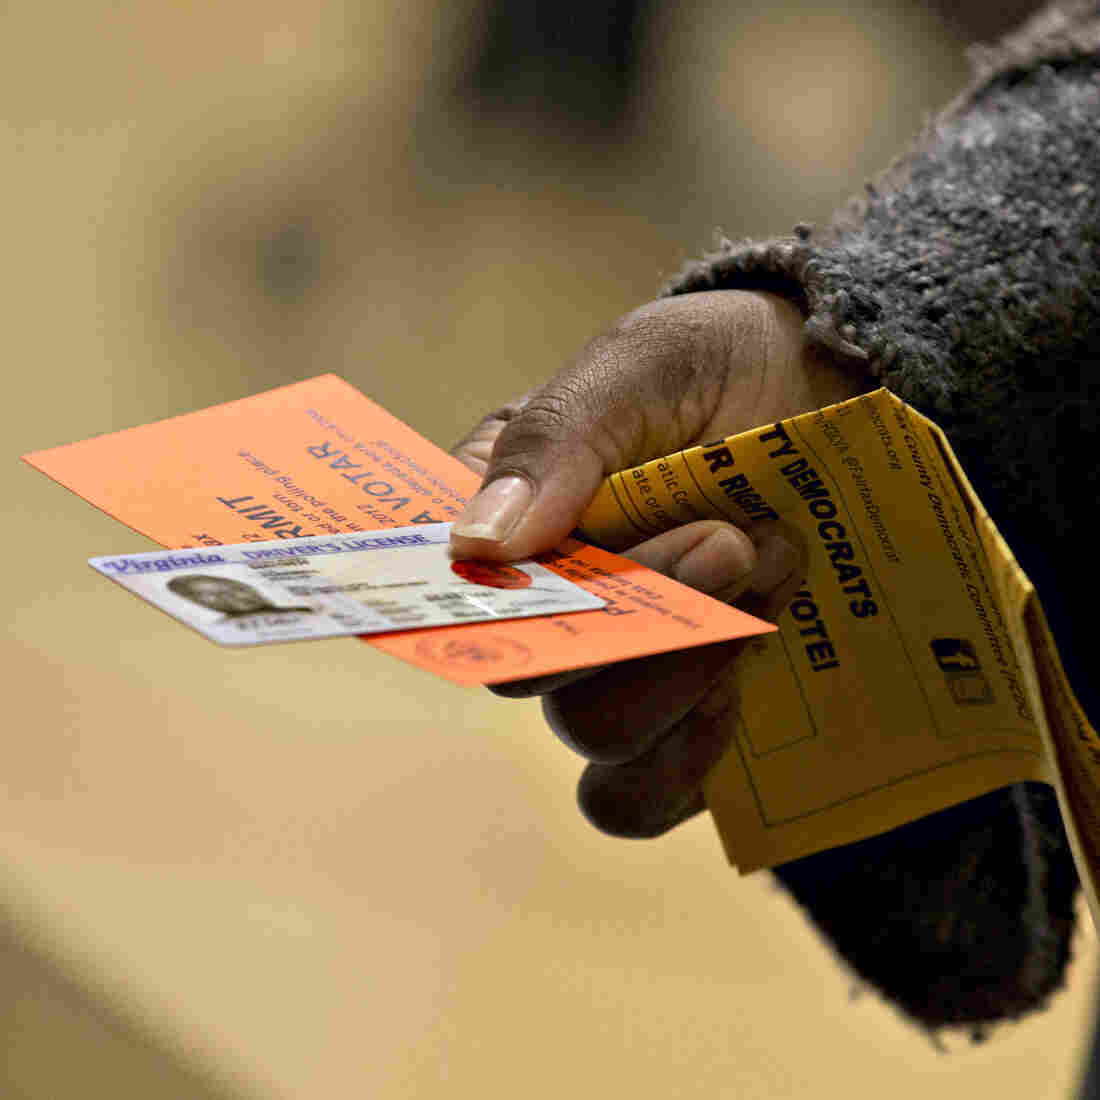 Supreme Court Declines To Hear Challenge To Strict Wisconsin Voter ID Law